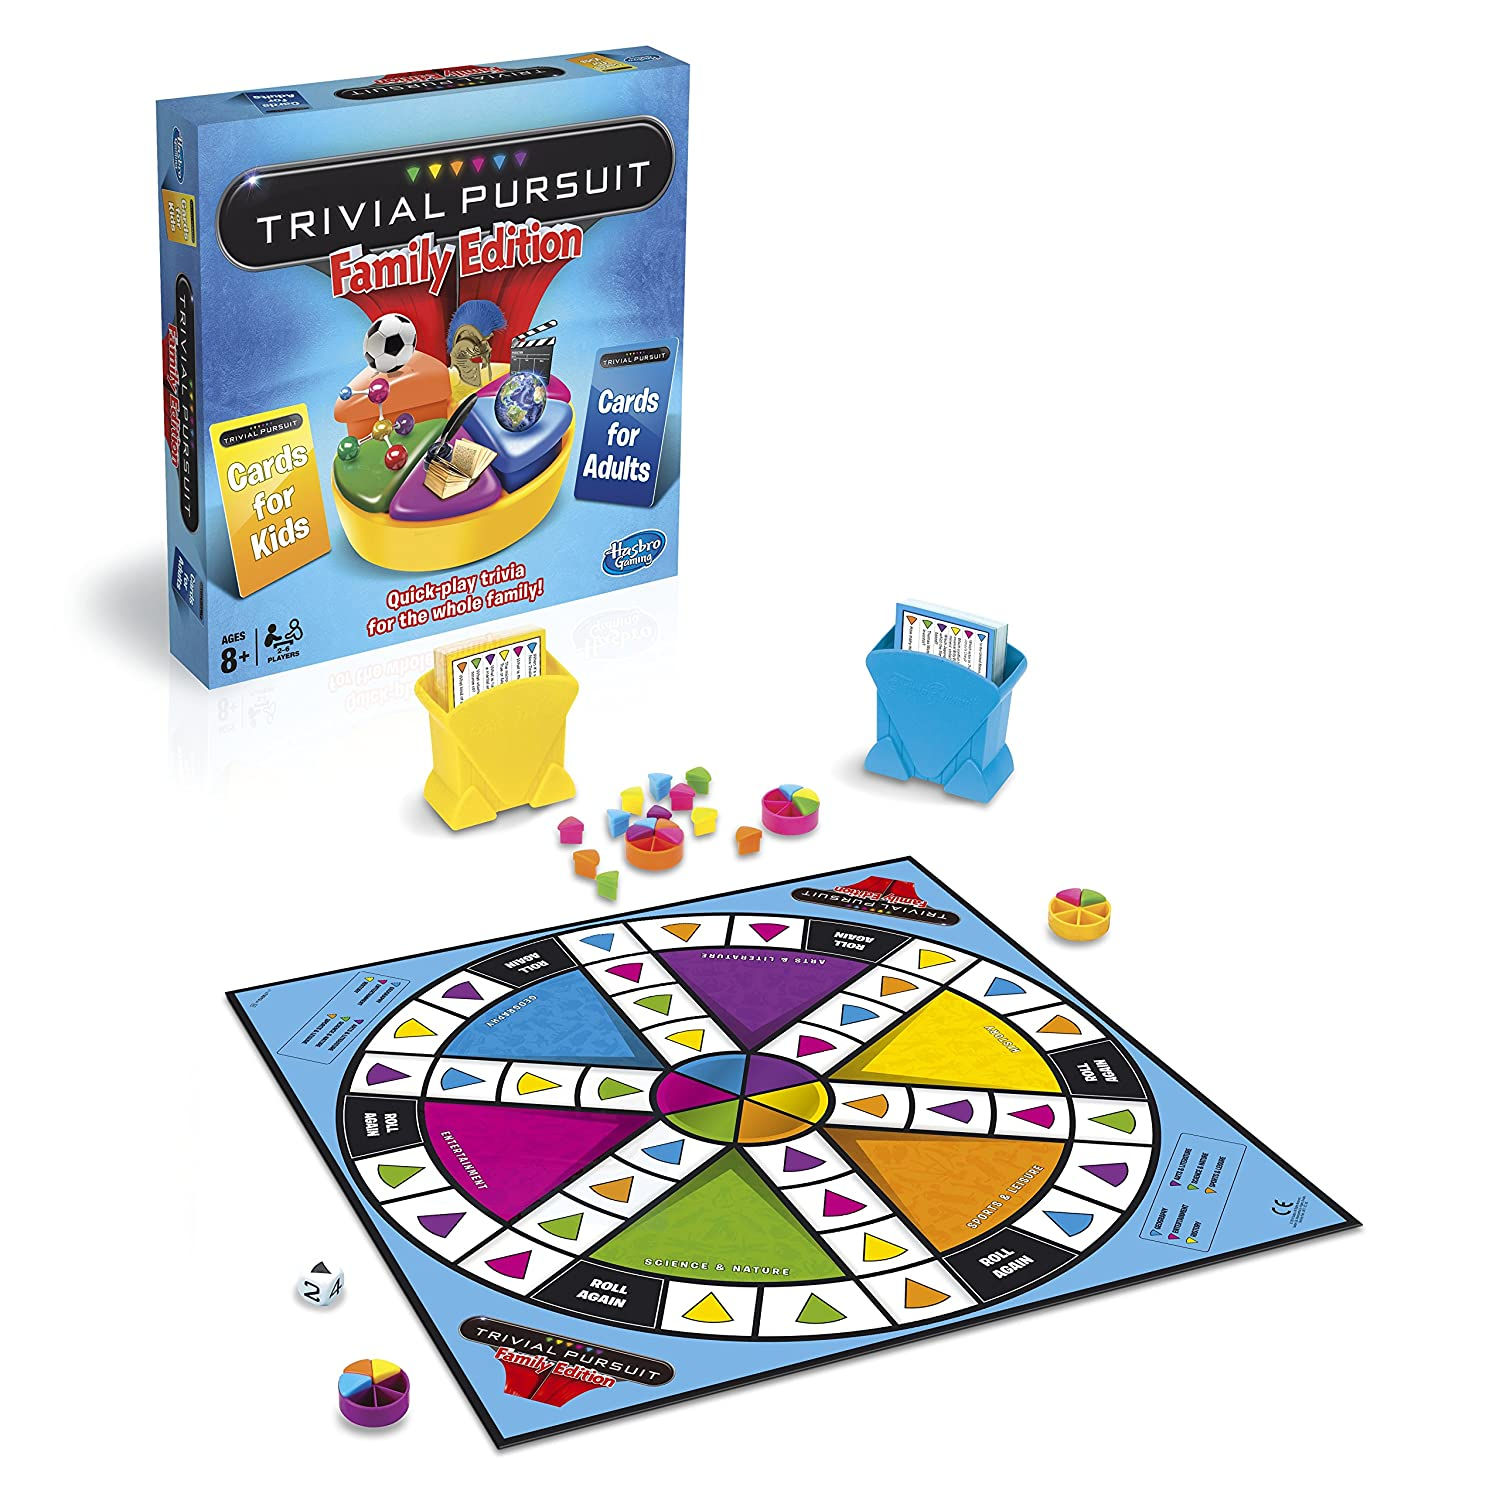 Trivial Pursuit Family Edition Board Game by Hasbro Amazon